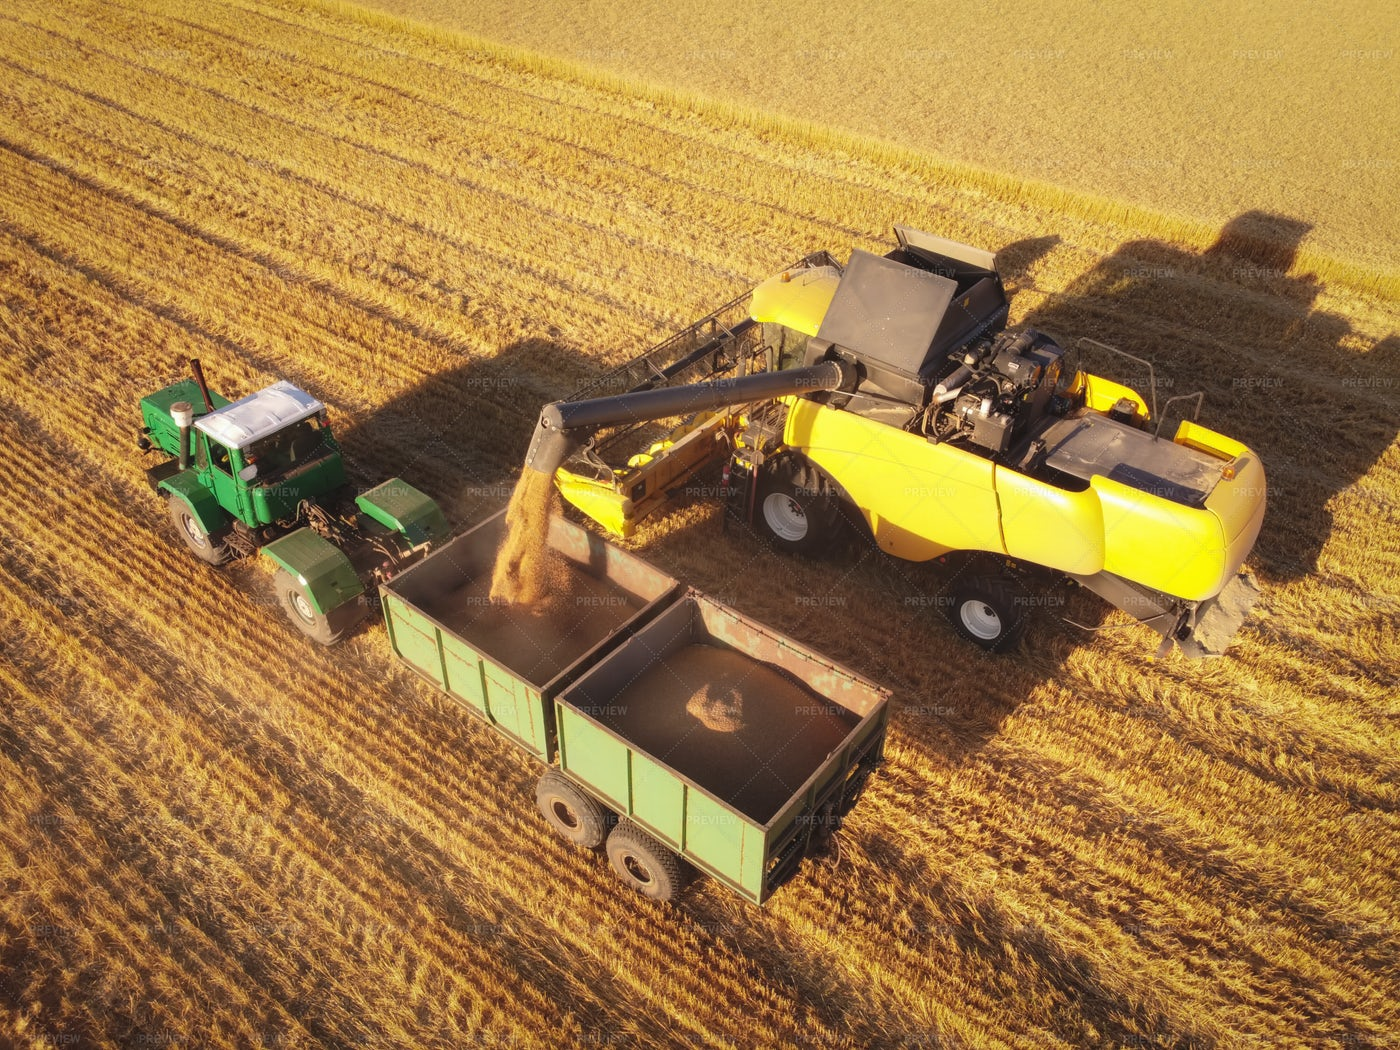 Wheat Seeds Loading In Trailer: Stock Photos